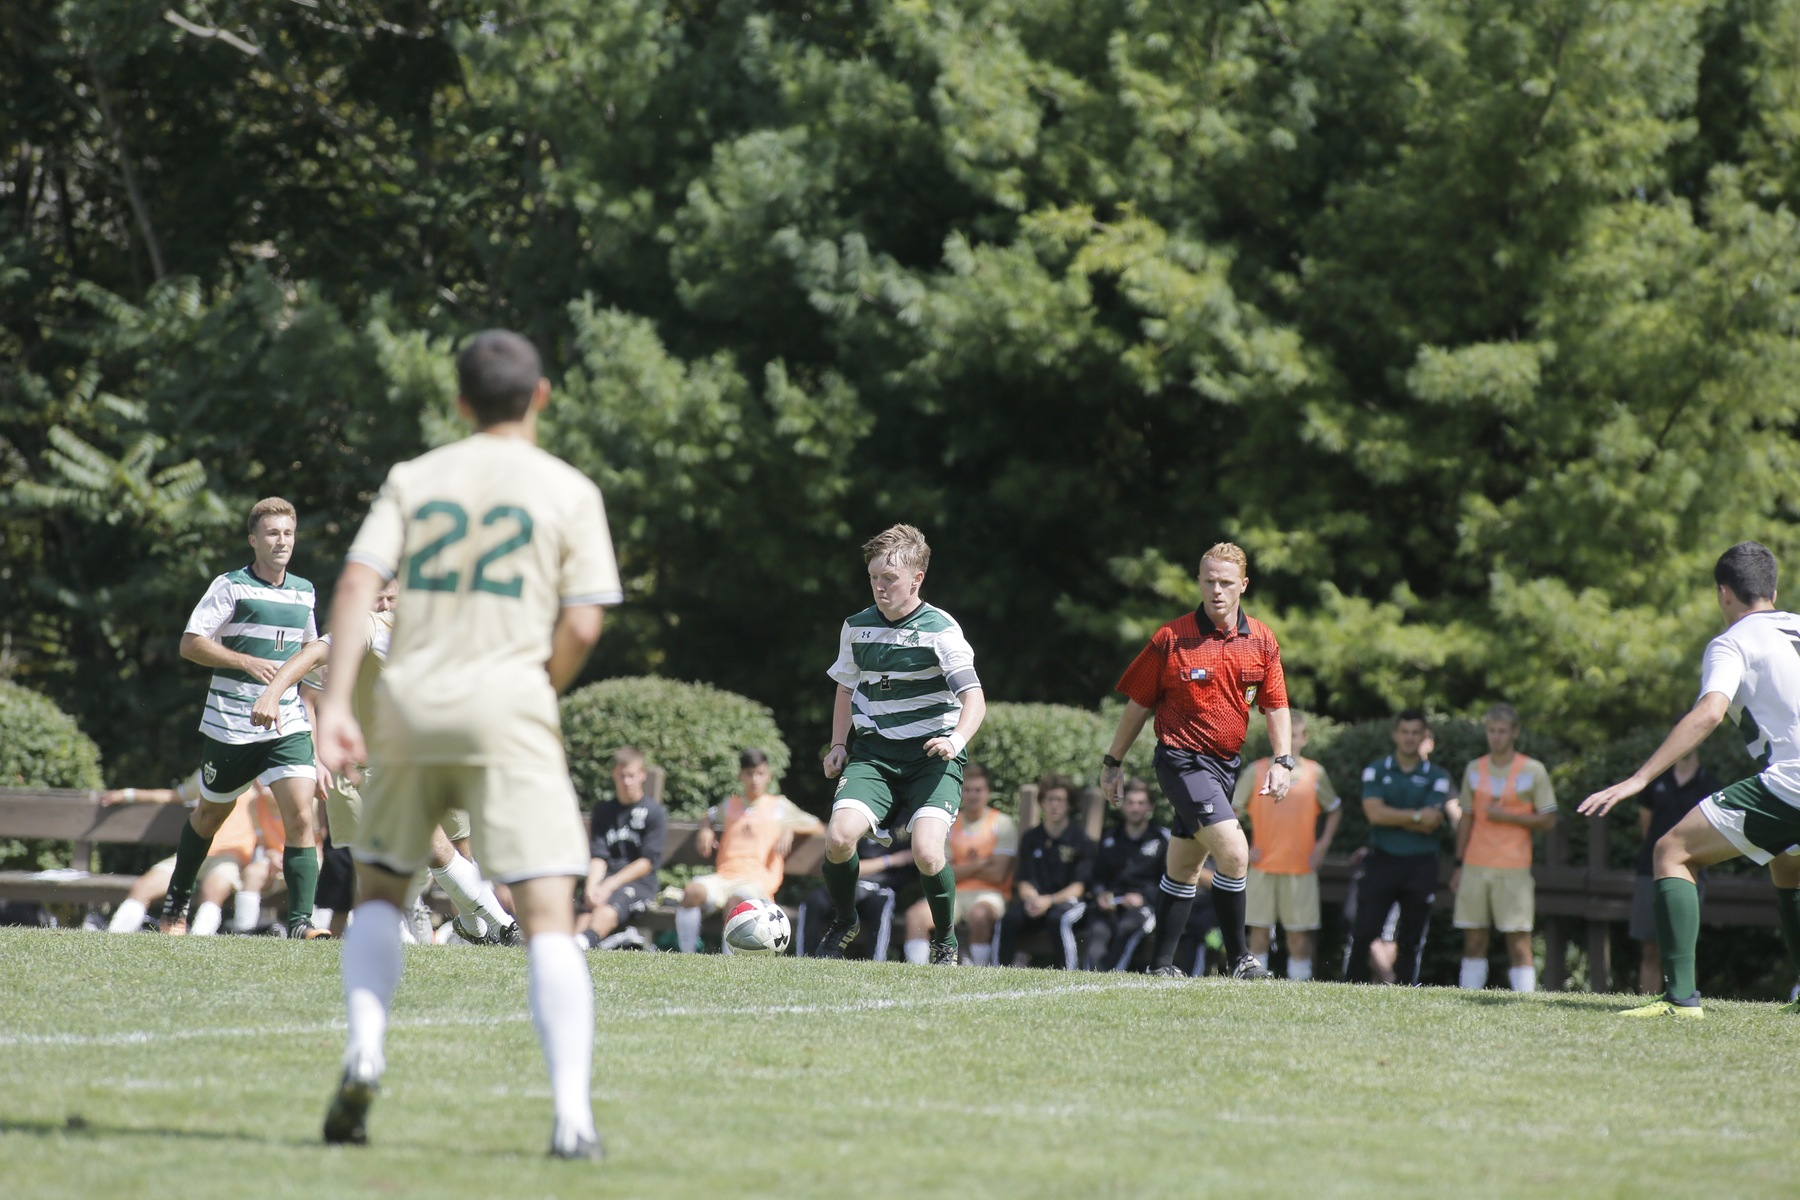 Men's Soccer Blanked by the Pioneers, 3-0